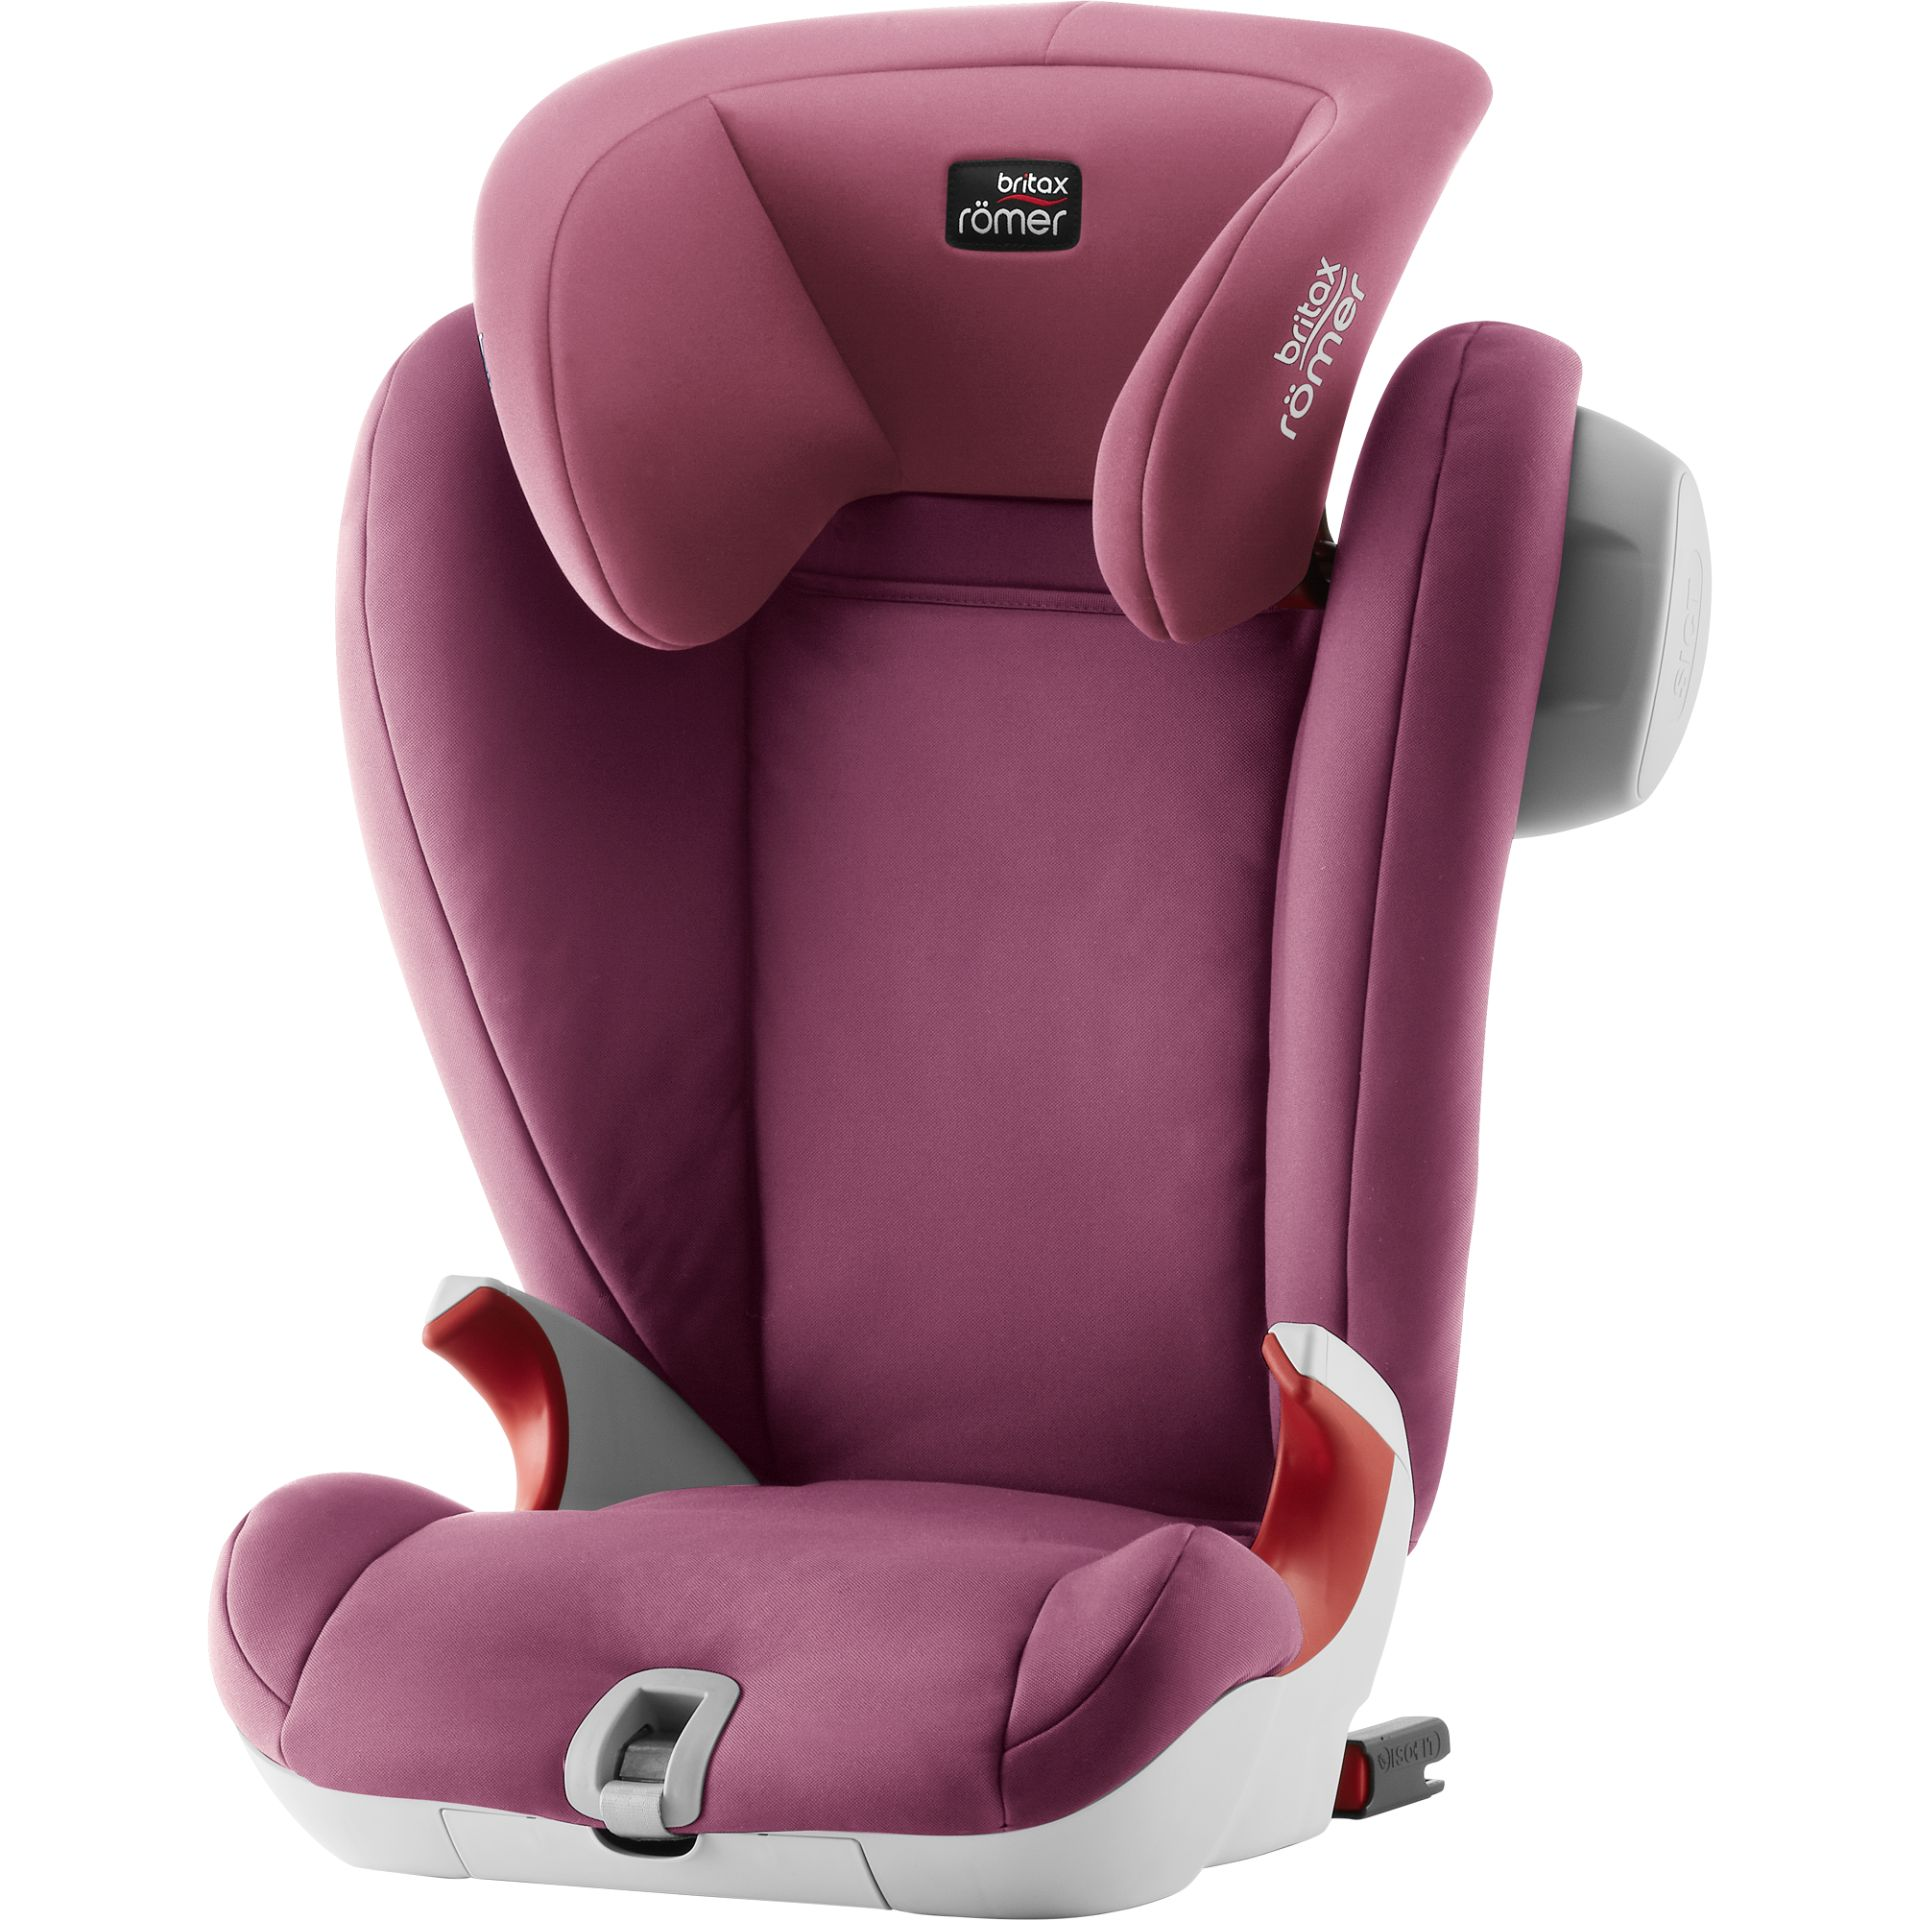 britax r mer child car seat kidfix sl sict 2019 wine rose. Black Bedroom Furniture Sets. Home Design Ideas